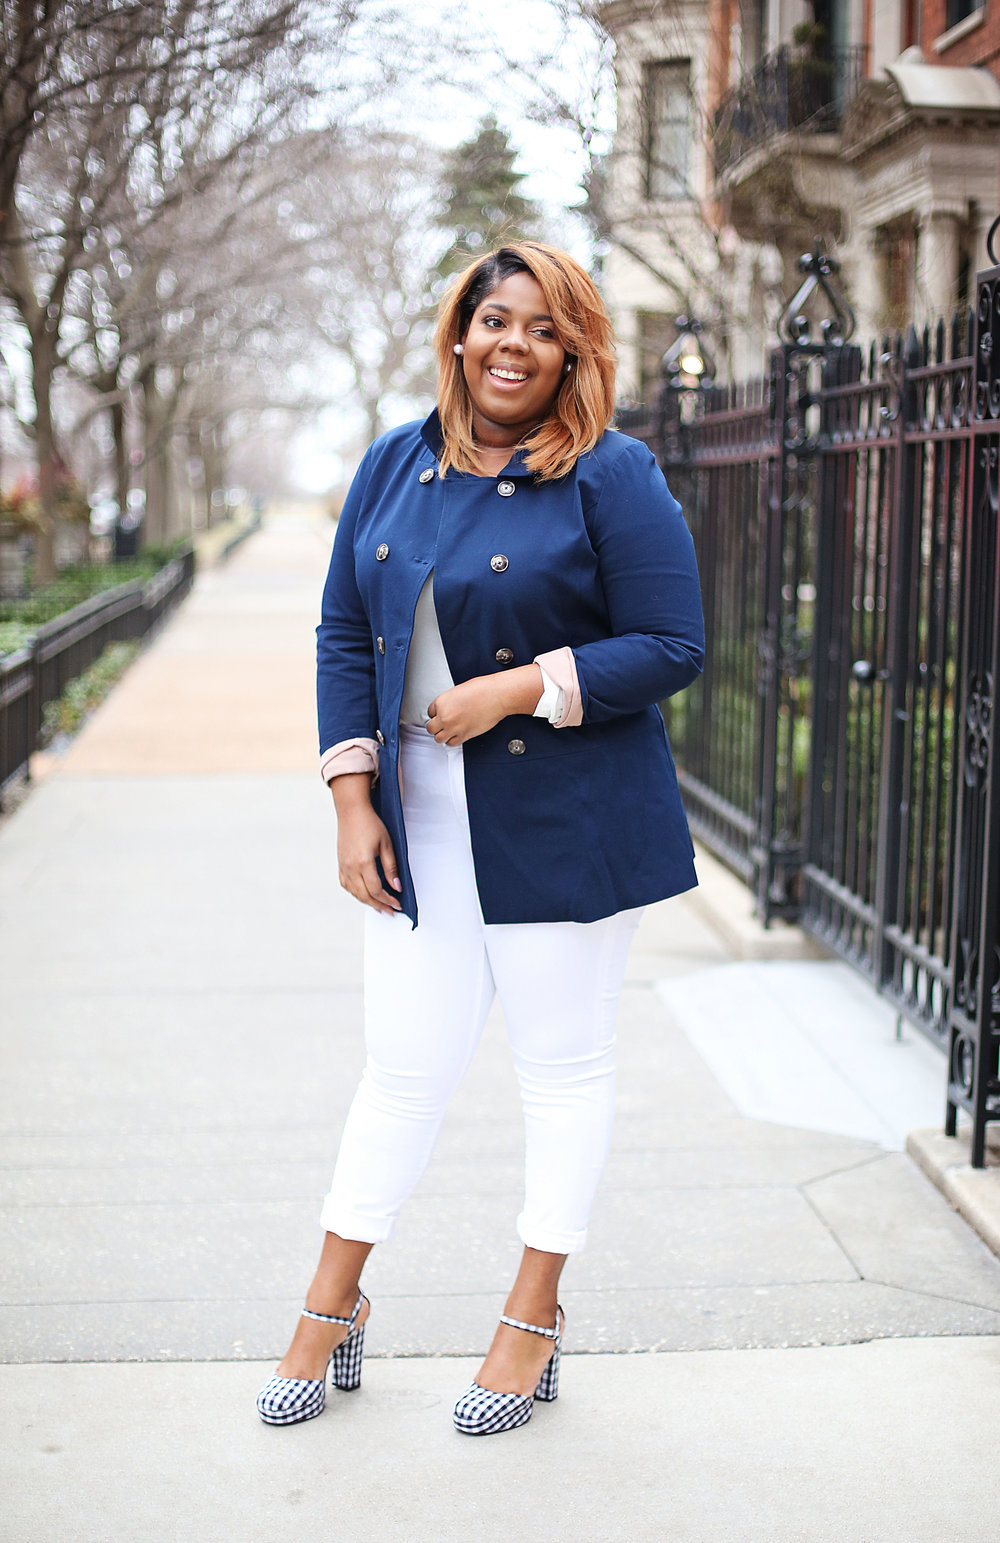 Plus Size Blogger All WHite Spring Style Hayet Rida Chicago Influencer Stitch Fix 7.jpg